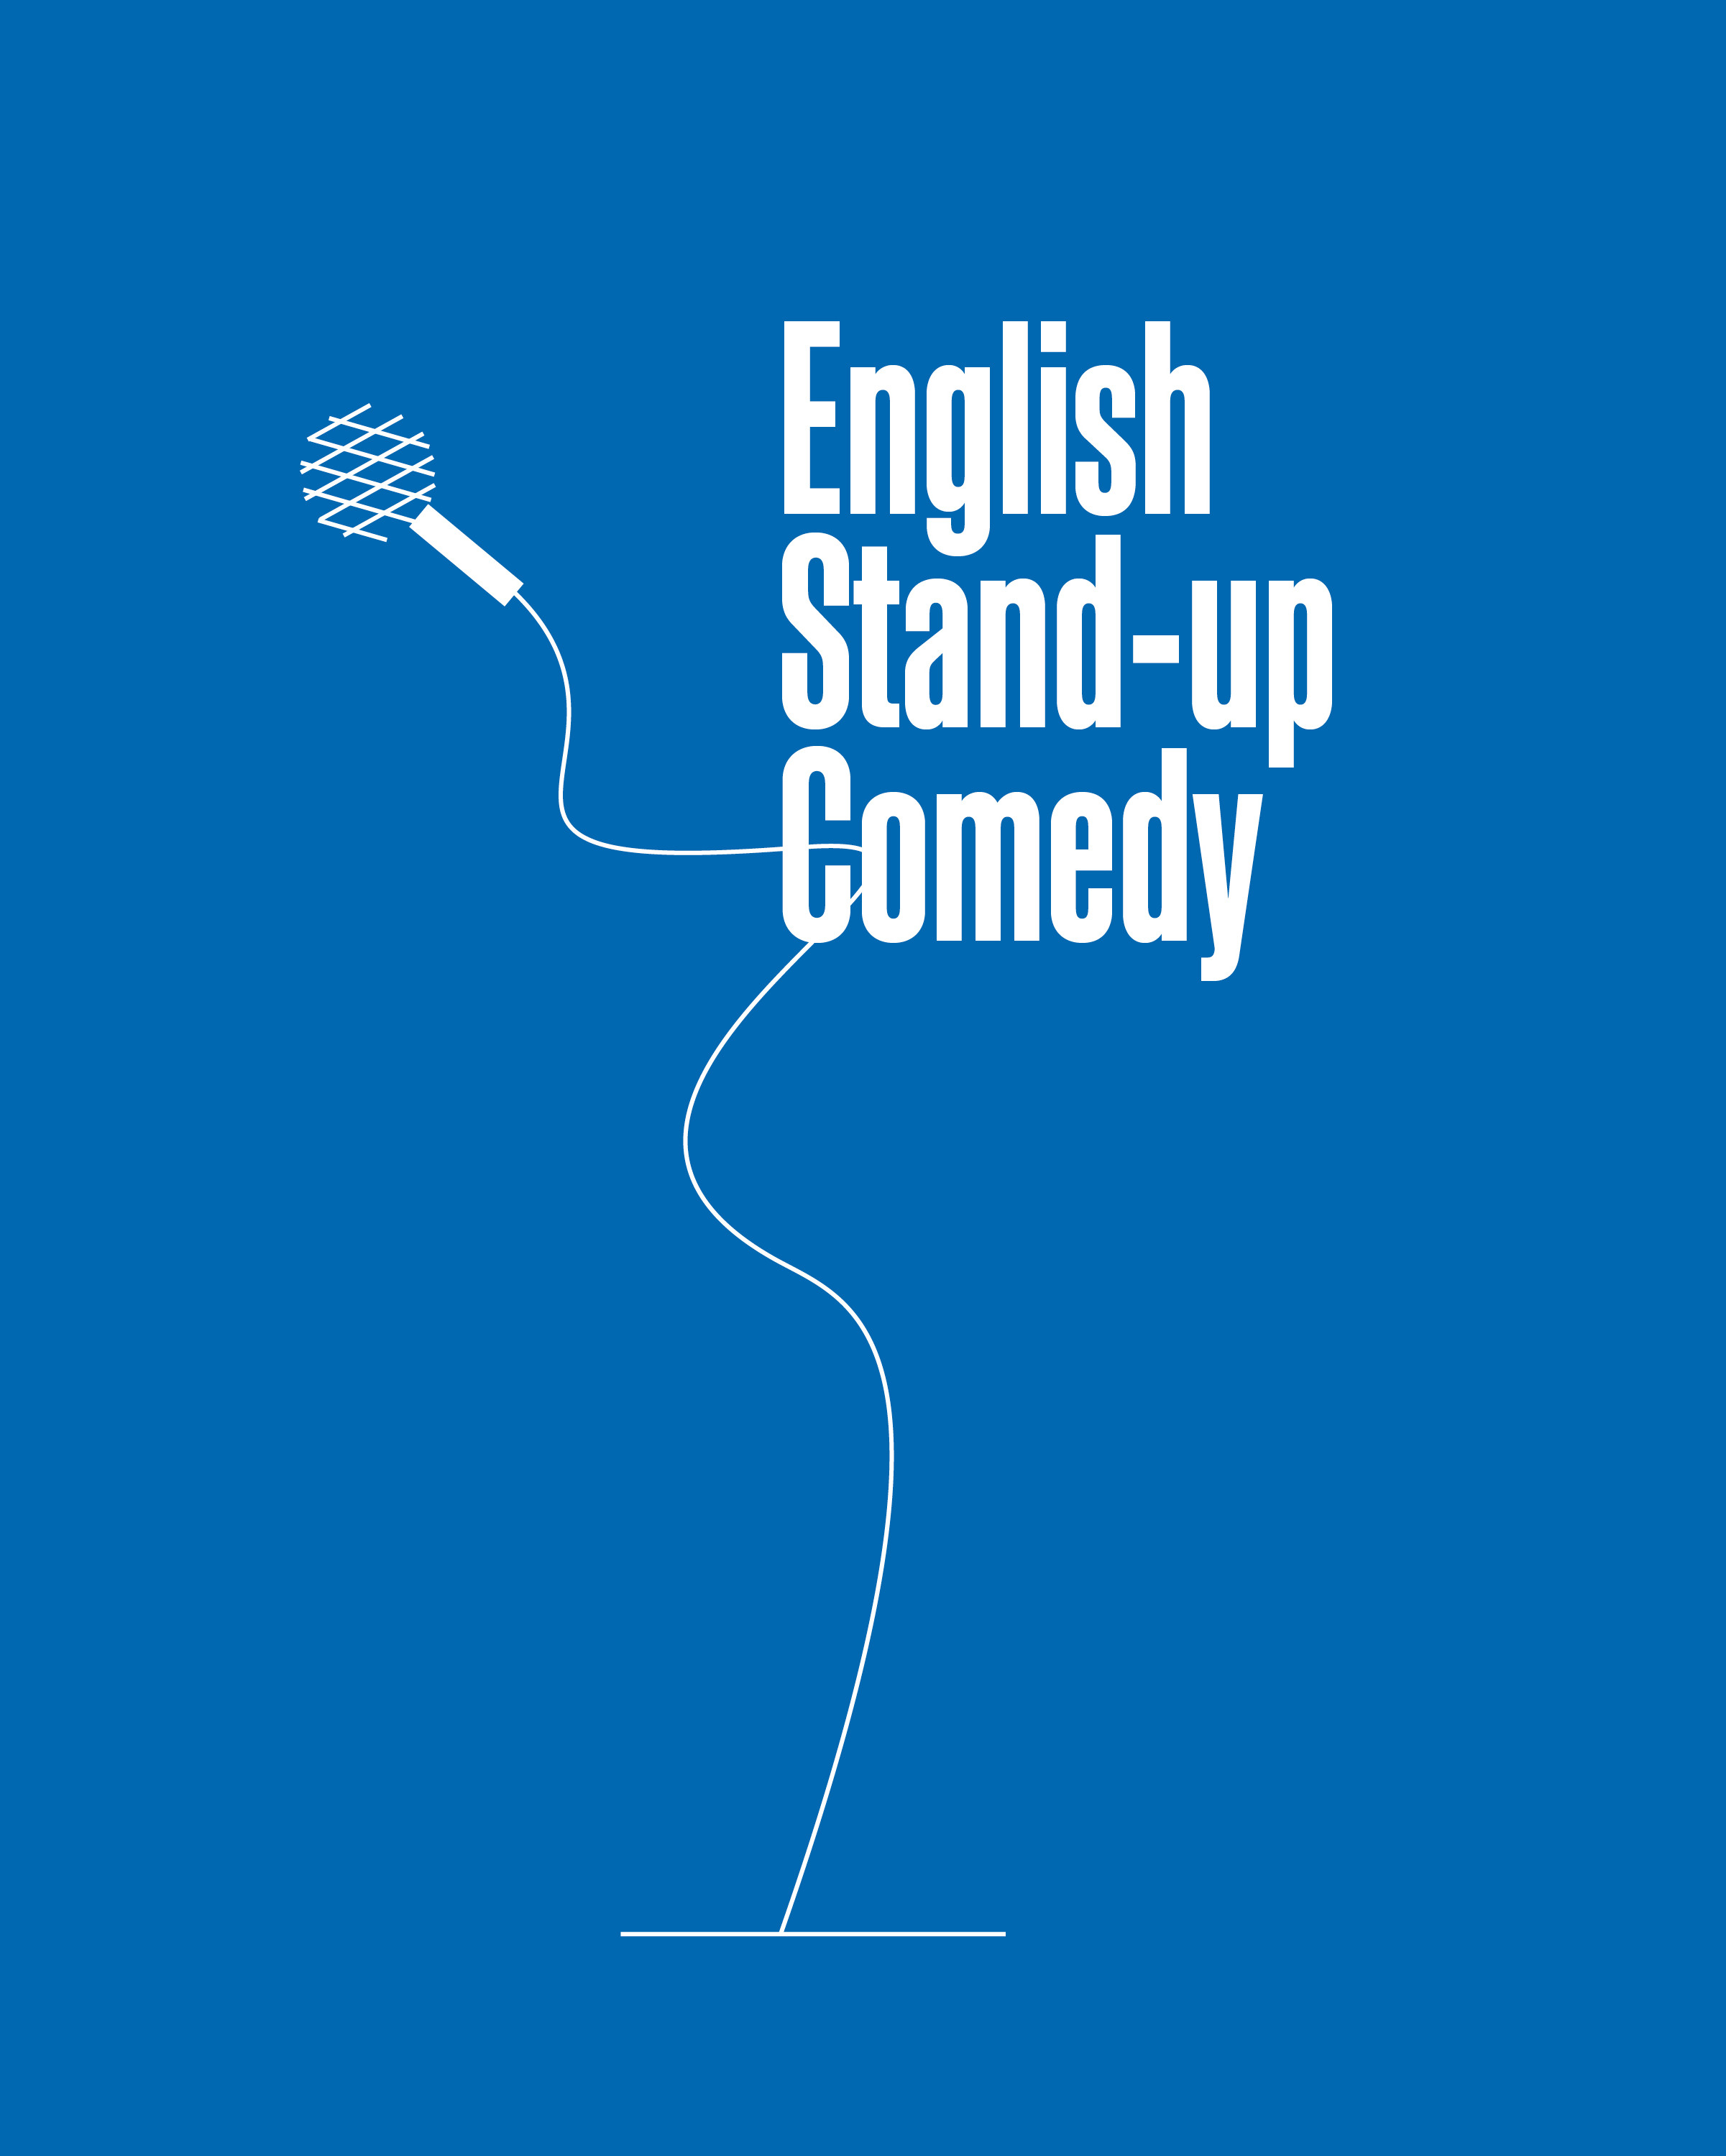 English Stand-up Comedy